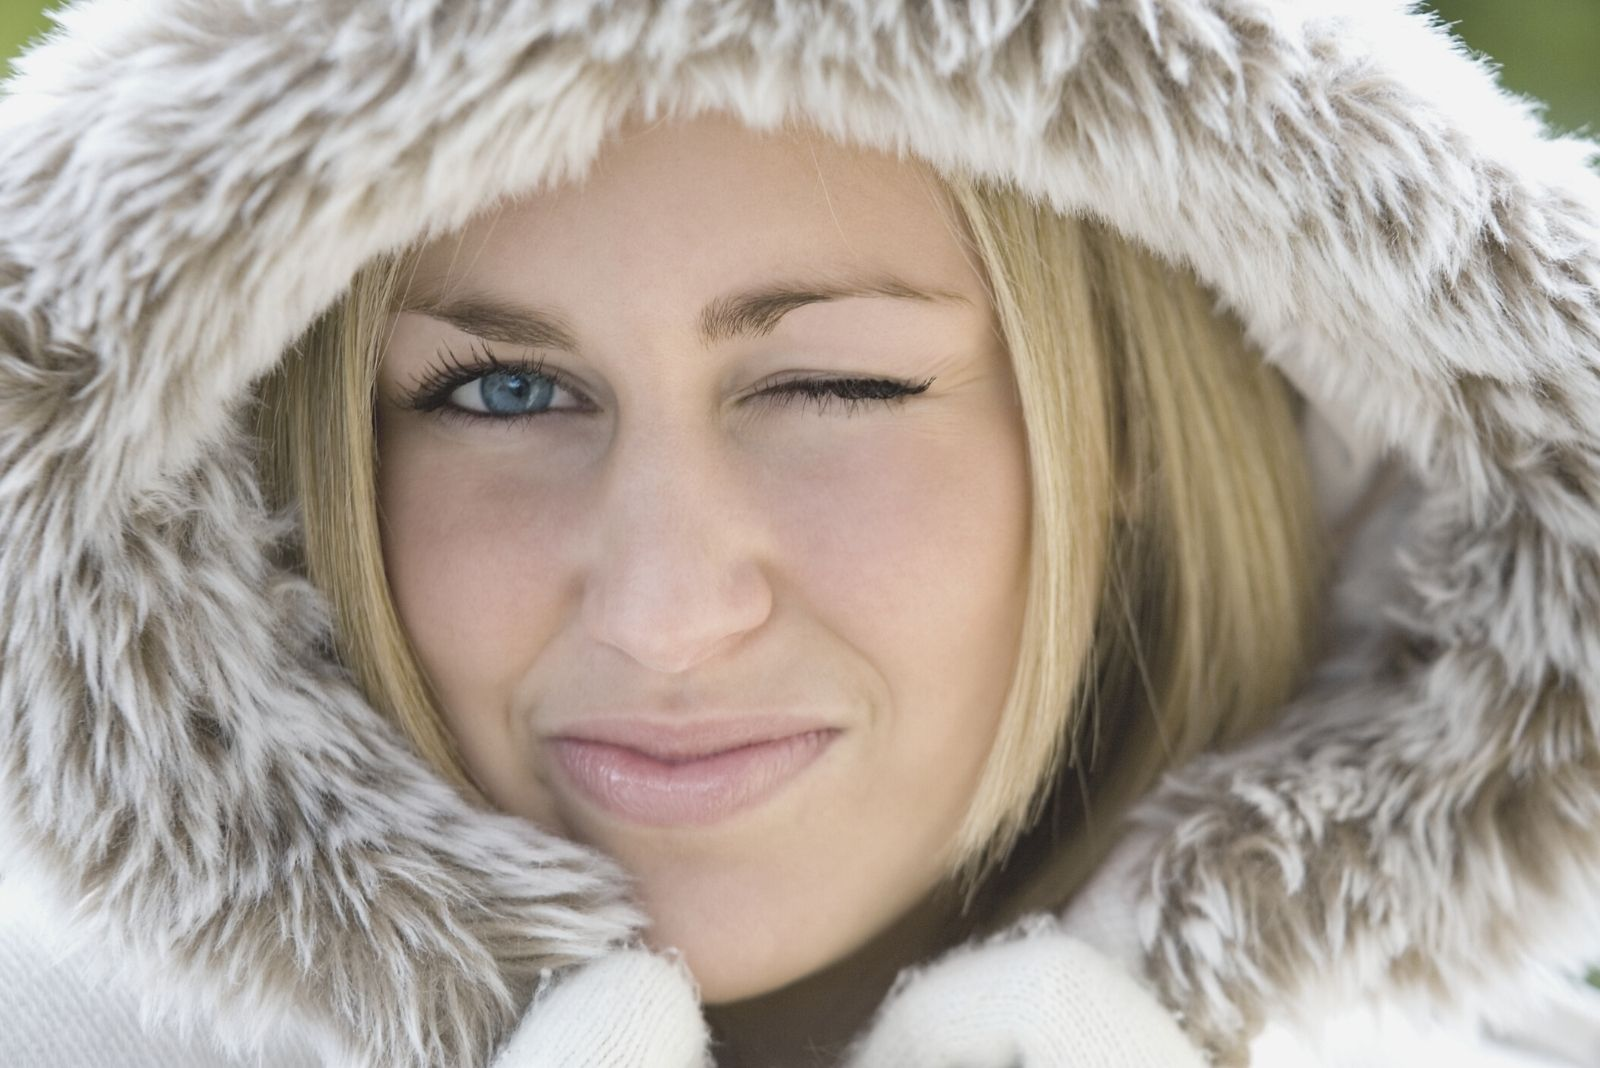 flirting woman looking and winking at the camera wearing a thick fur jacket in close up image